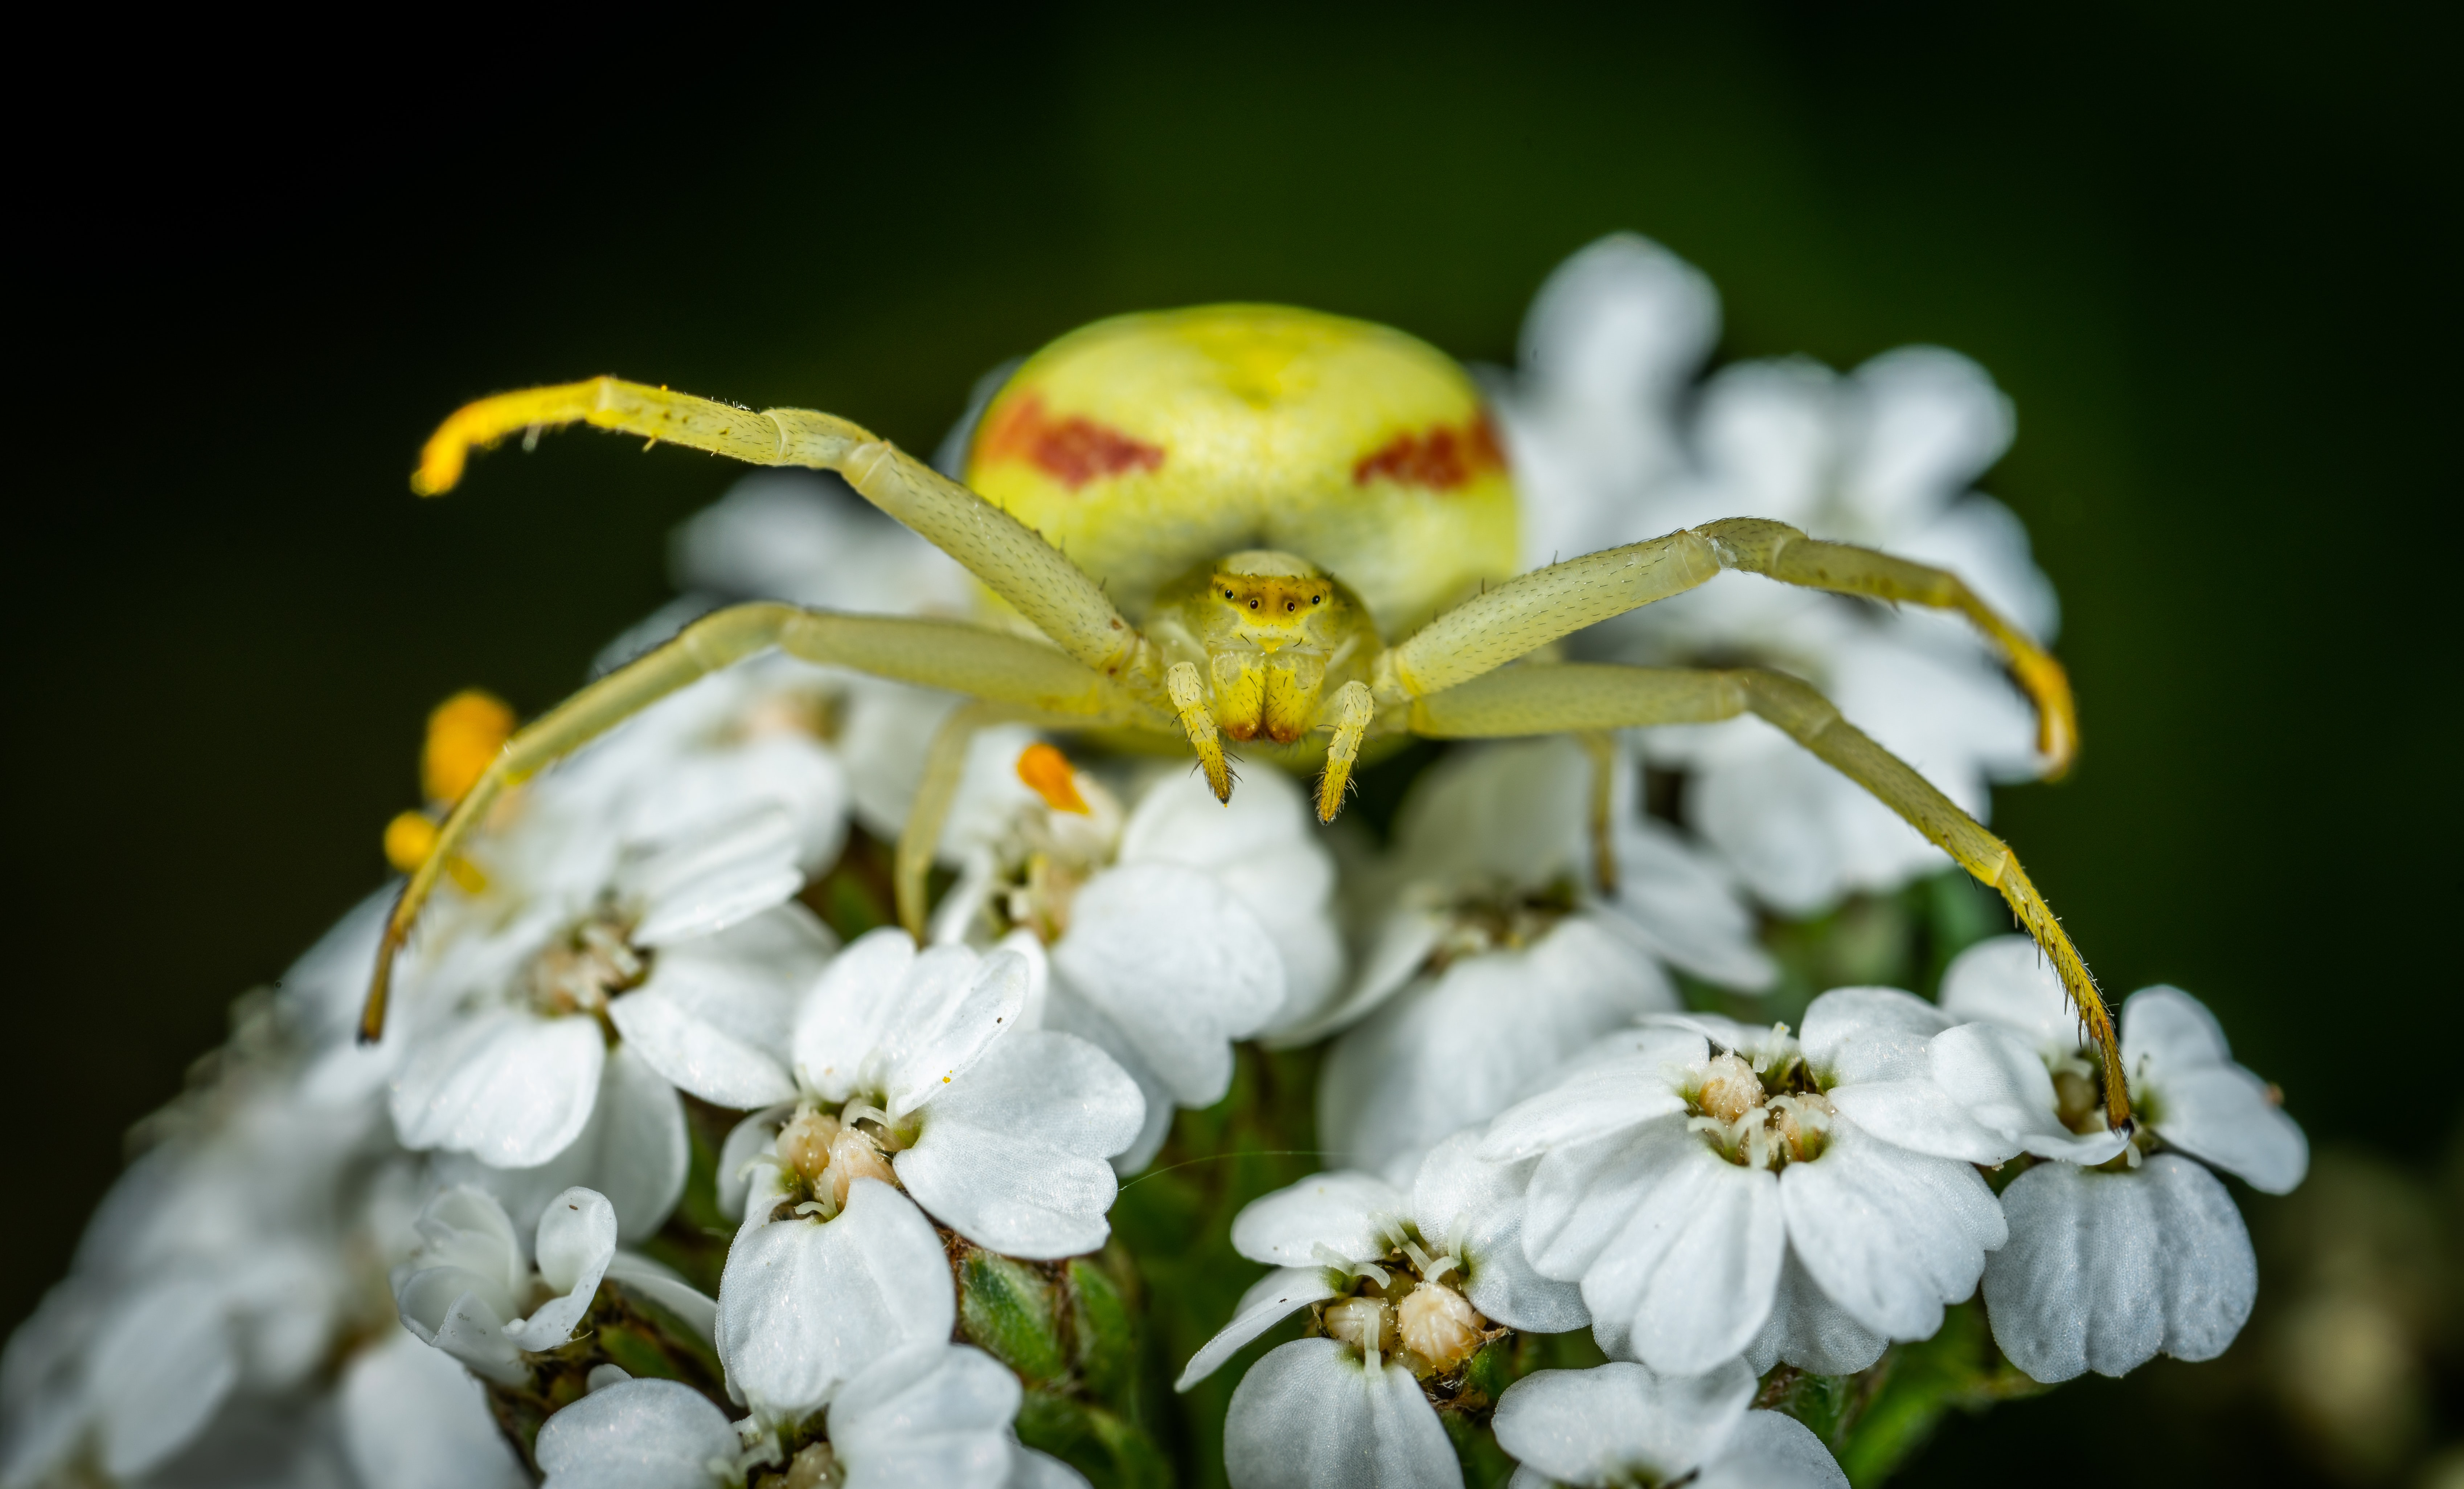 close up photography of crab spider on white flowers